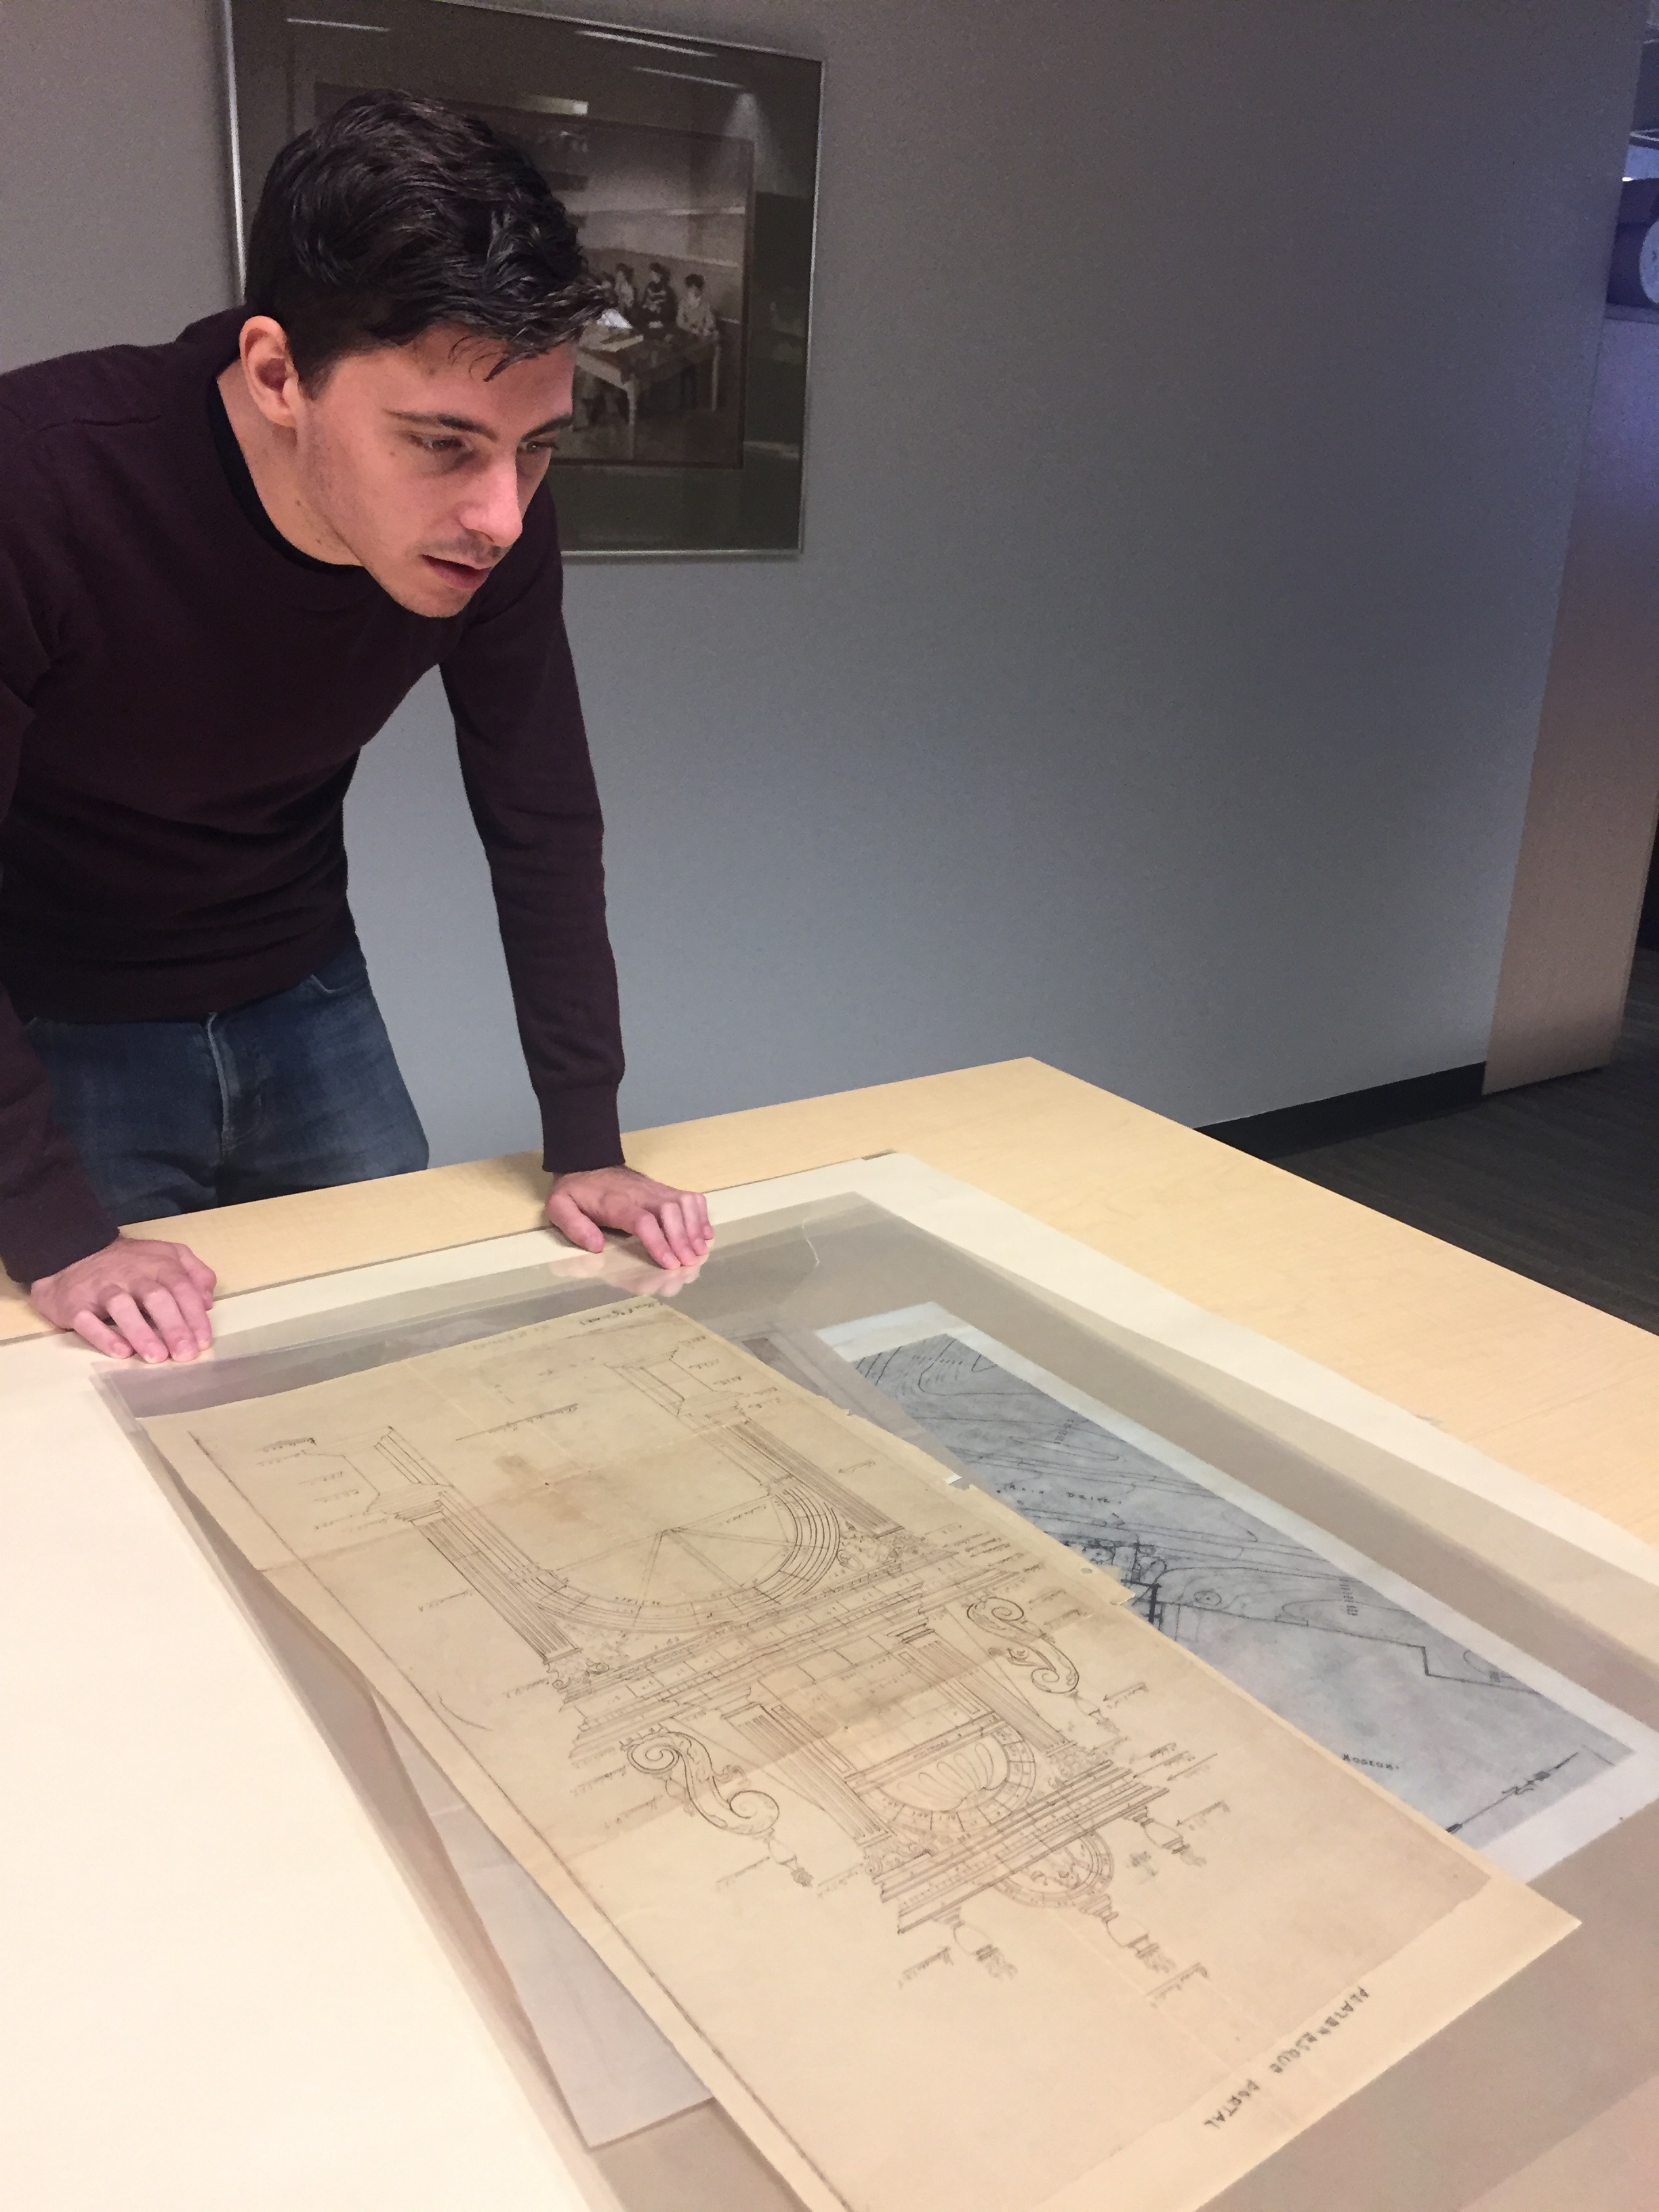 Jake examining drawings from the Julia Morgan Collection at Cal Poly